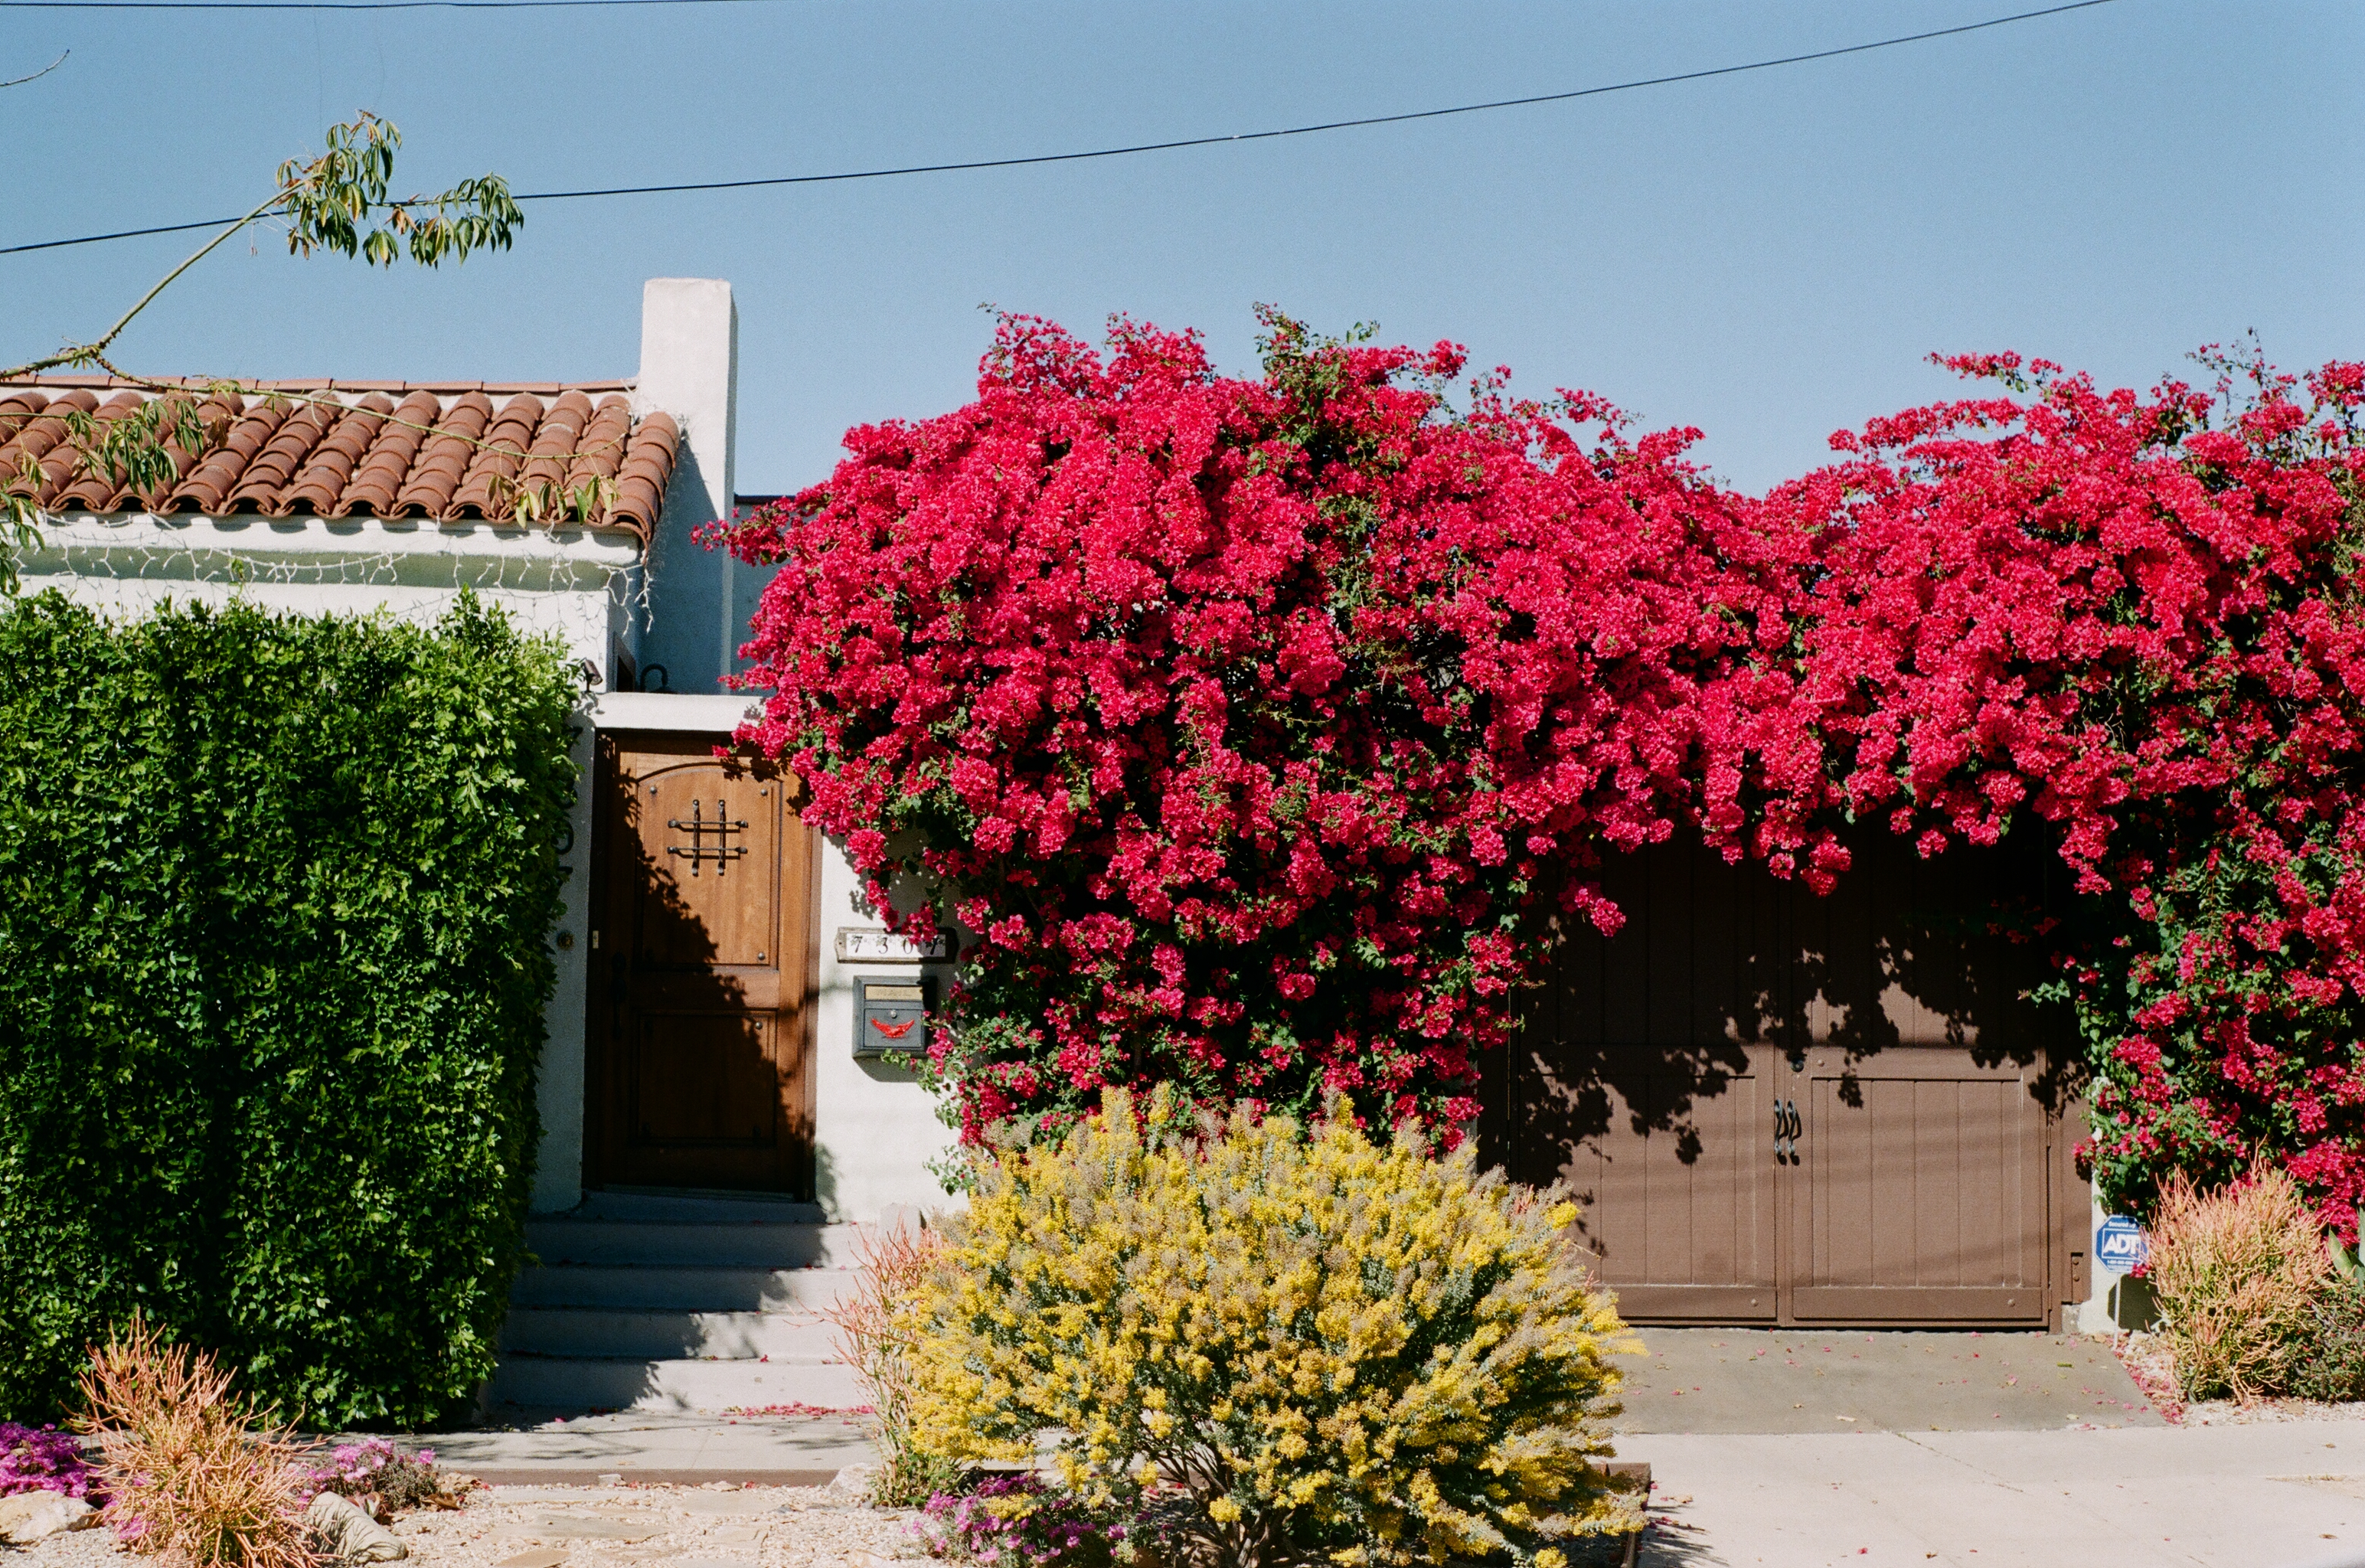 Los Angeles Bougainvillea Analogue Travel Journal